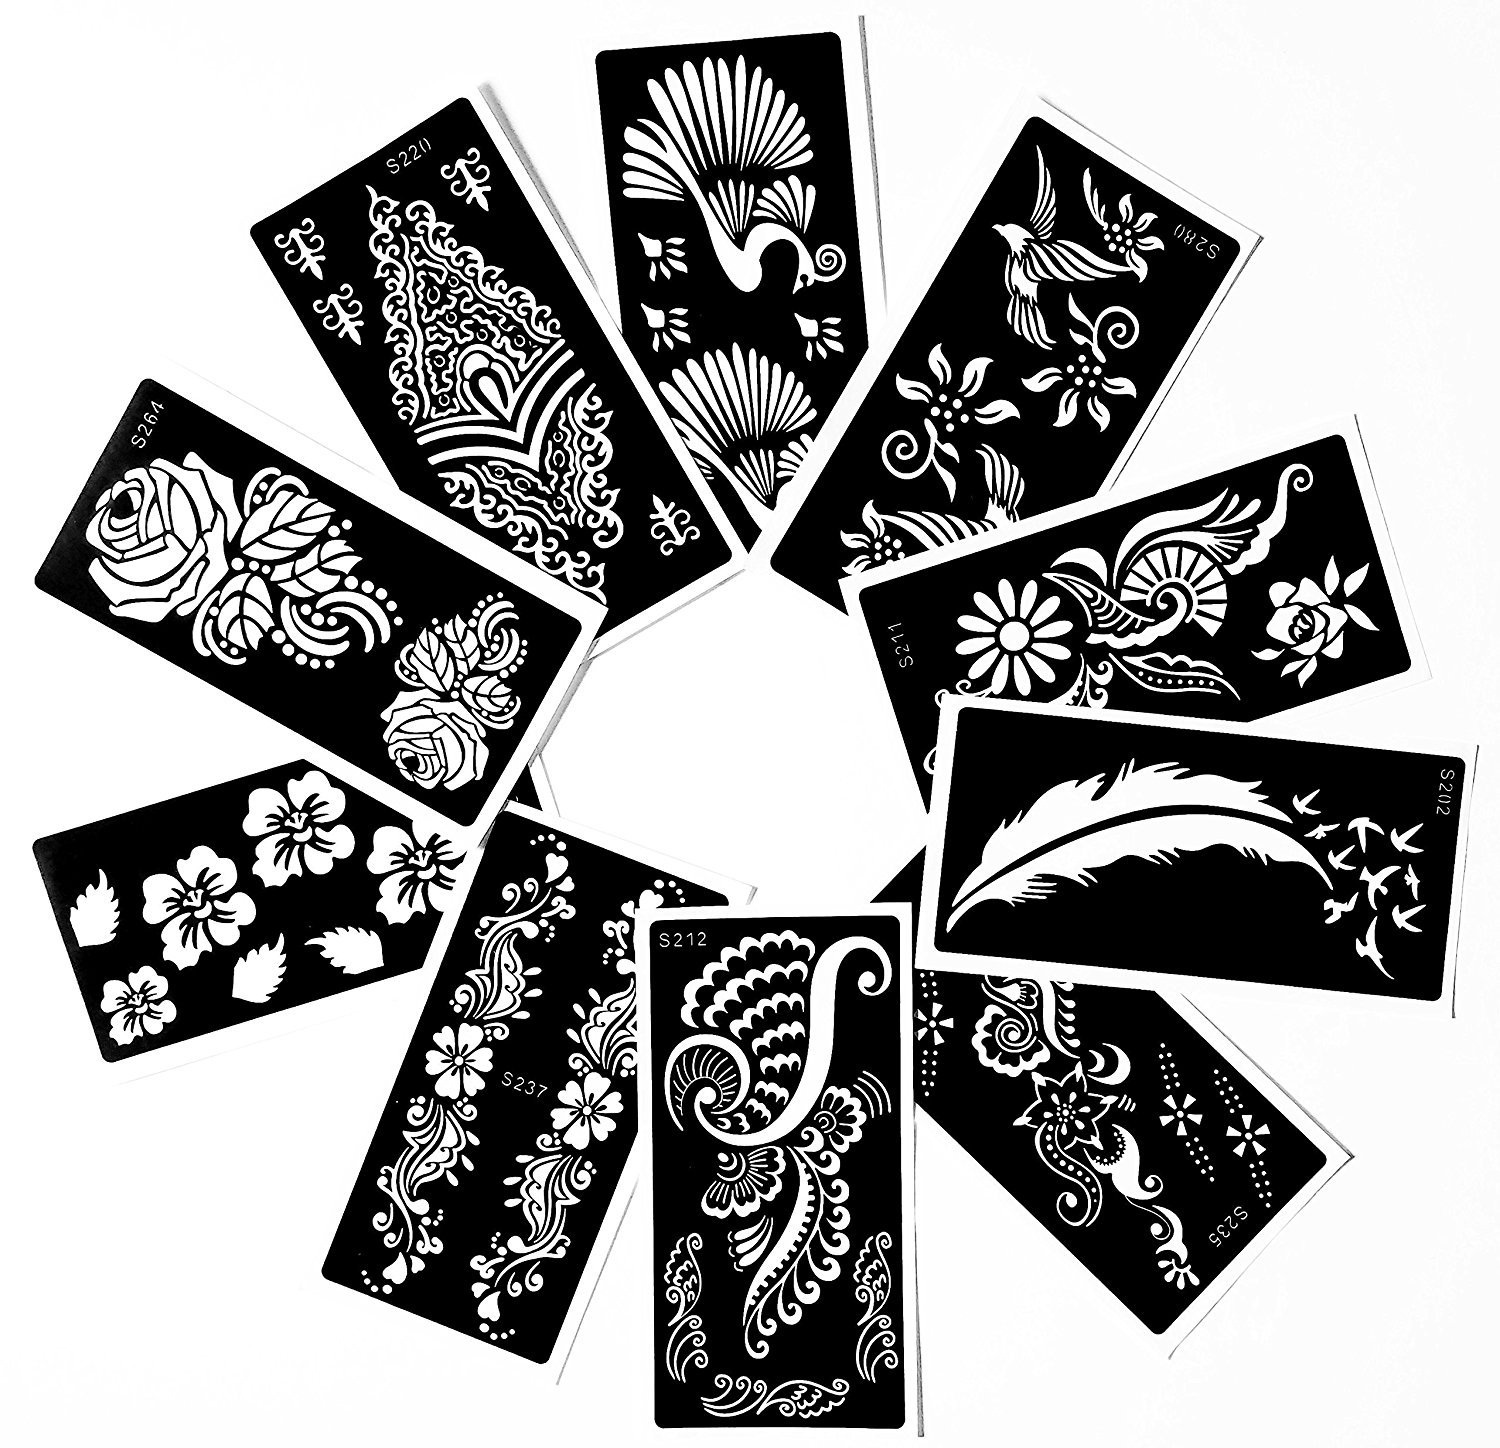 Tattoo Stencil (10 Sheet) Henna Designs Temporary Tattoo / Self-Adhesive - Template